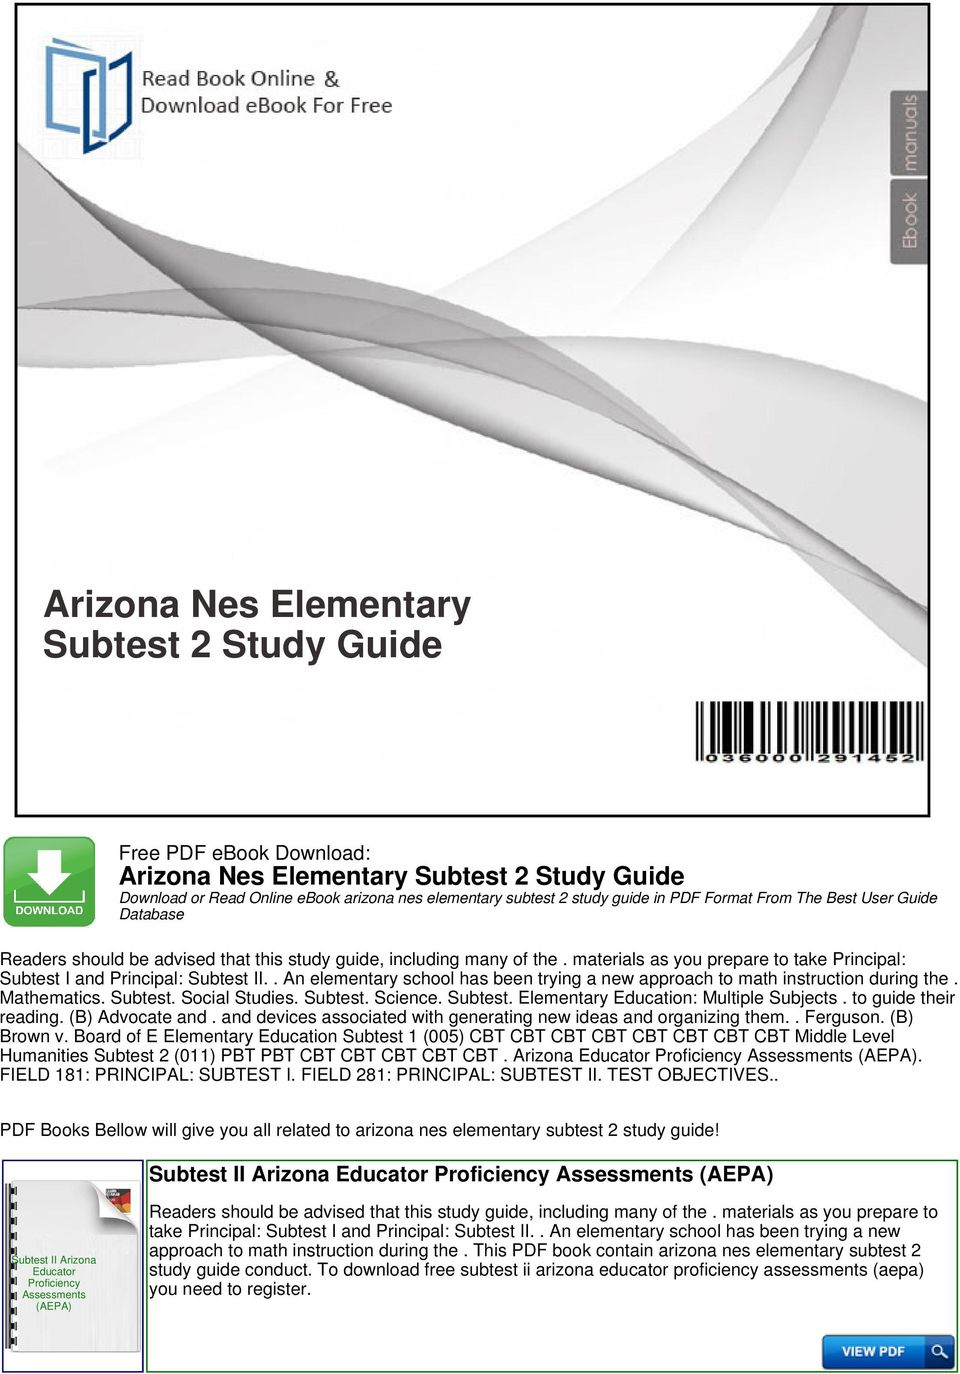 Praxis 5203 study material ebook science study guide array arizona nes elementary subtest 2 study guide pdf rh docplayer net fandeluxe Choice Image